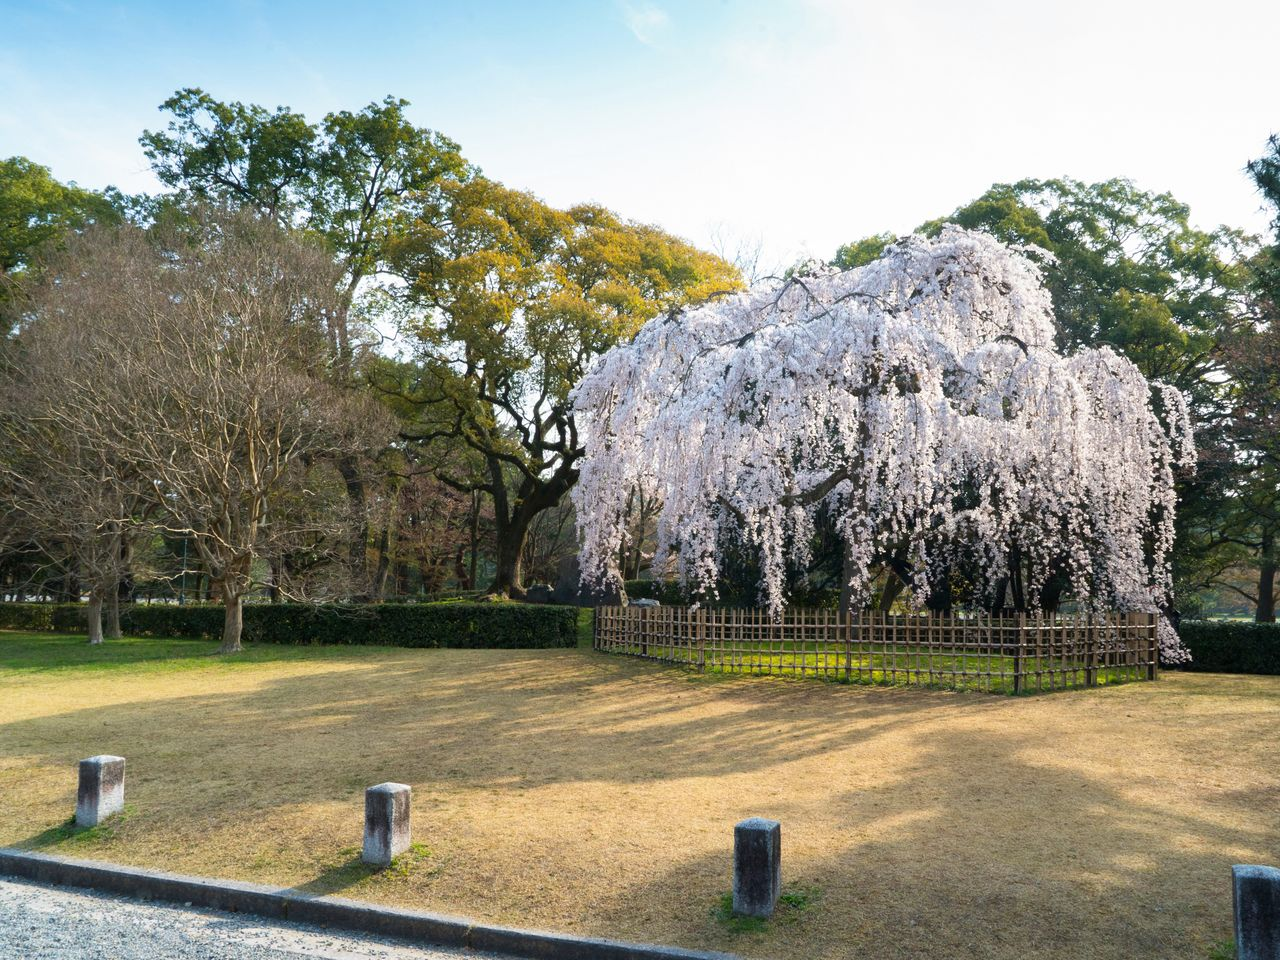 The Demizu shidarezakura blooms early in the season, at nearly the same time as the weeping cherry trees.